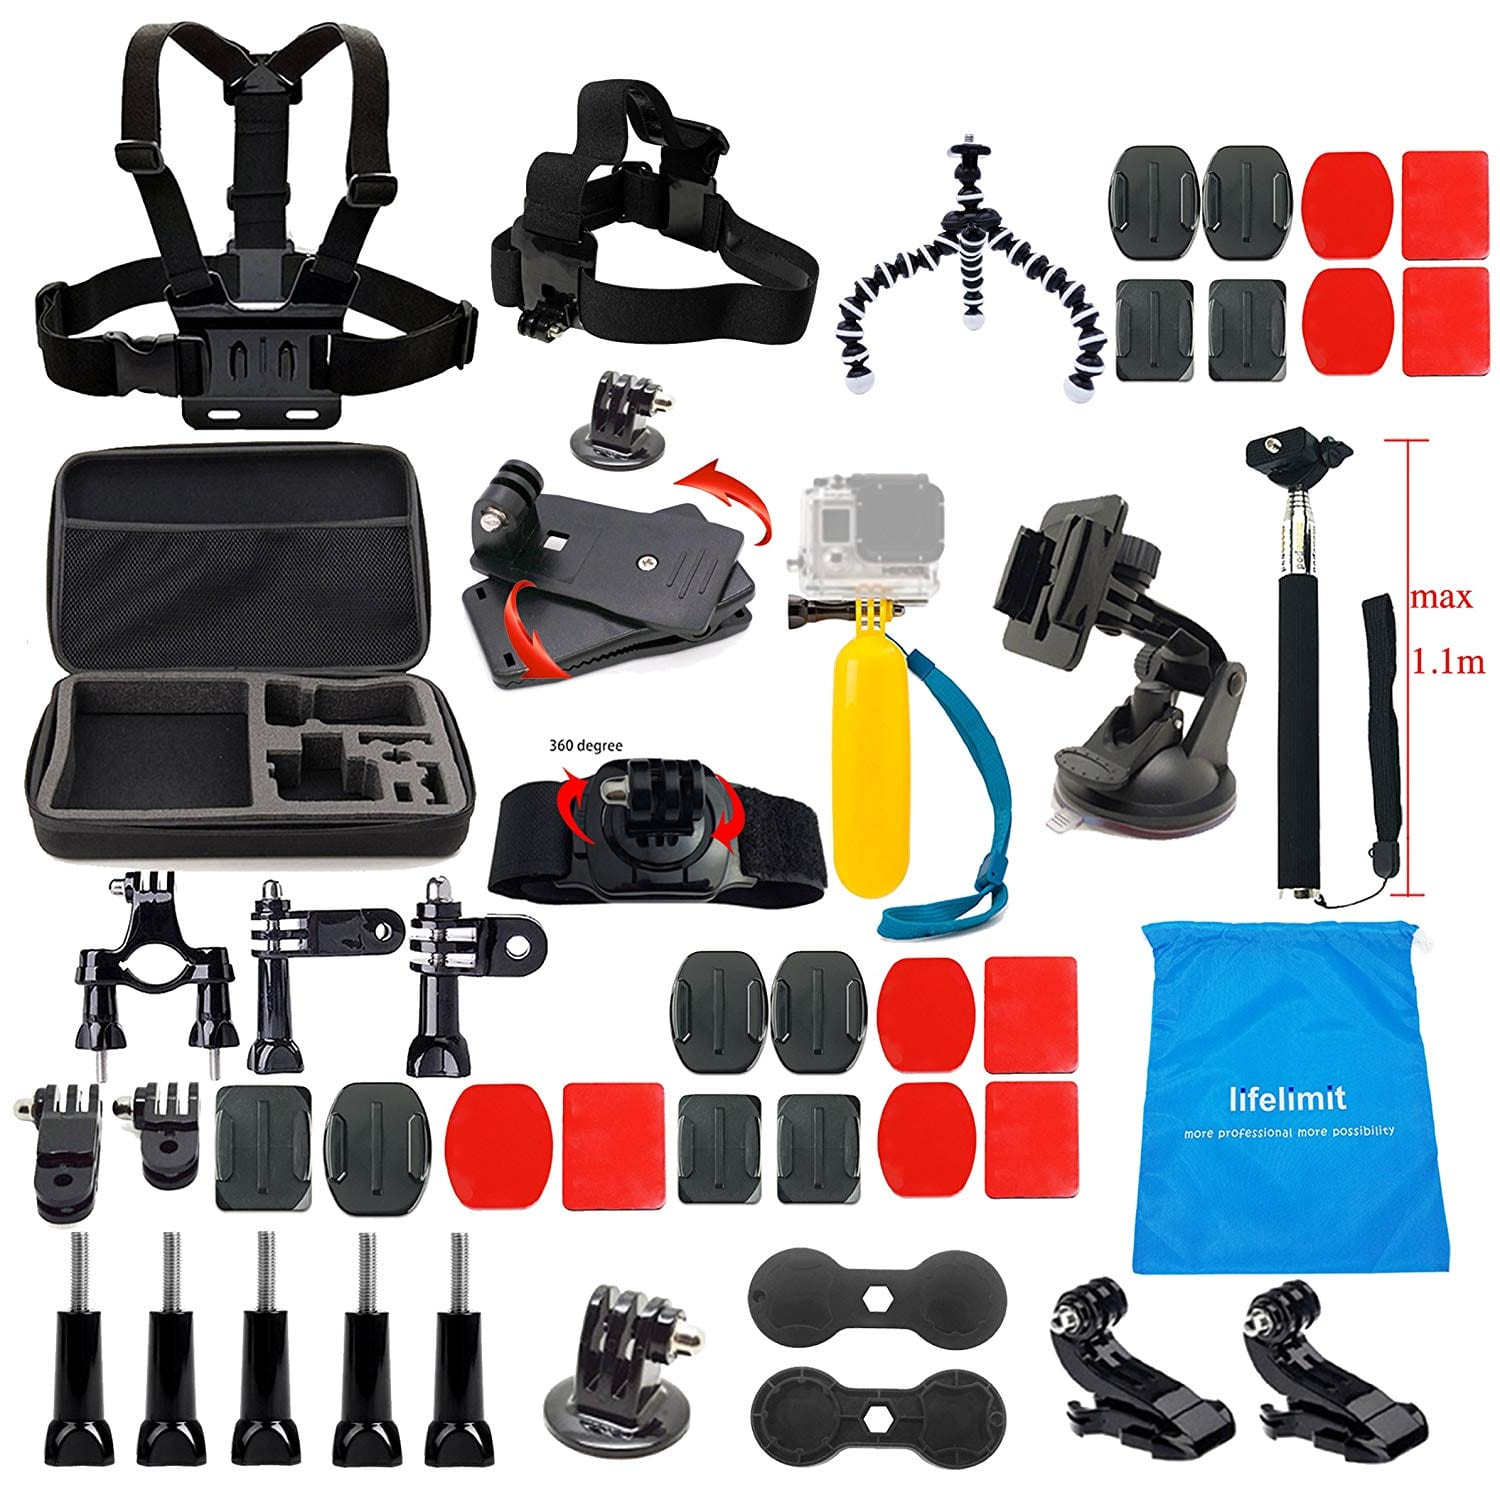 Lifelimit Accessory Starter Kit for GoPro Hero 6/ Fusion 5/ Session/ 4/ 3/ 2/ HD/ Hero